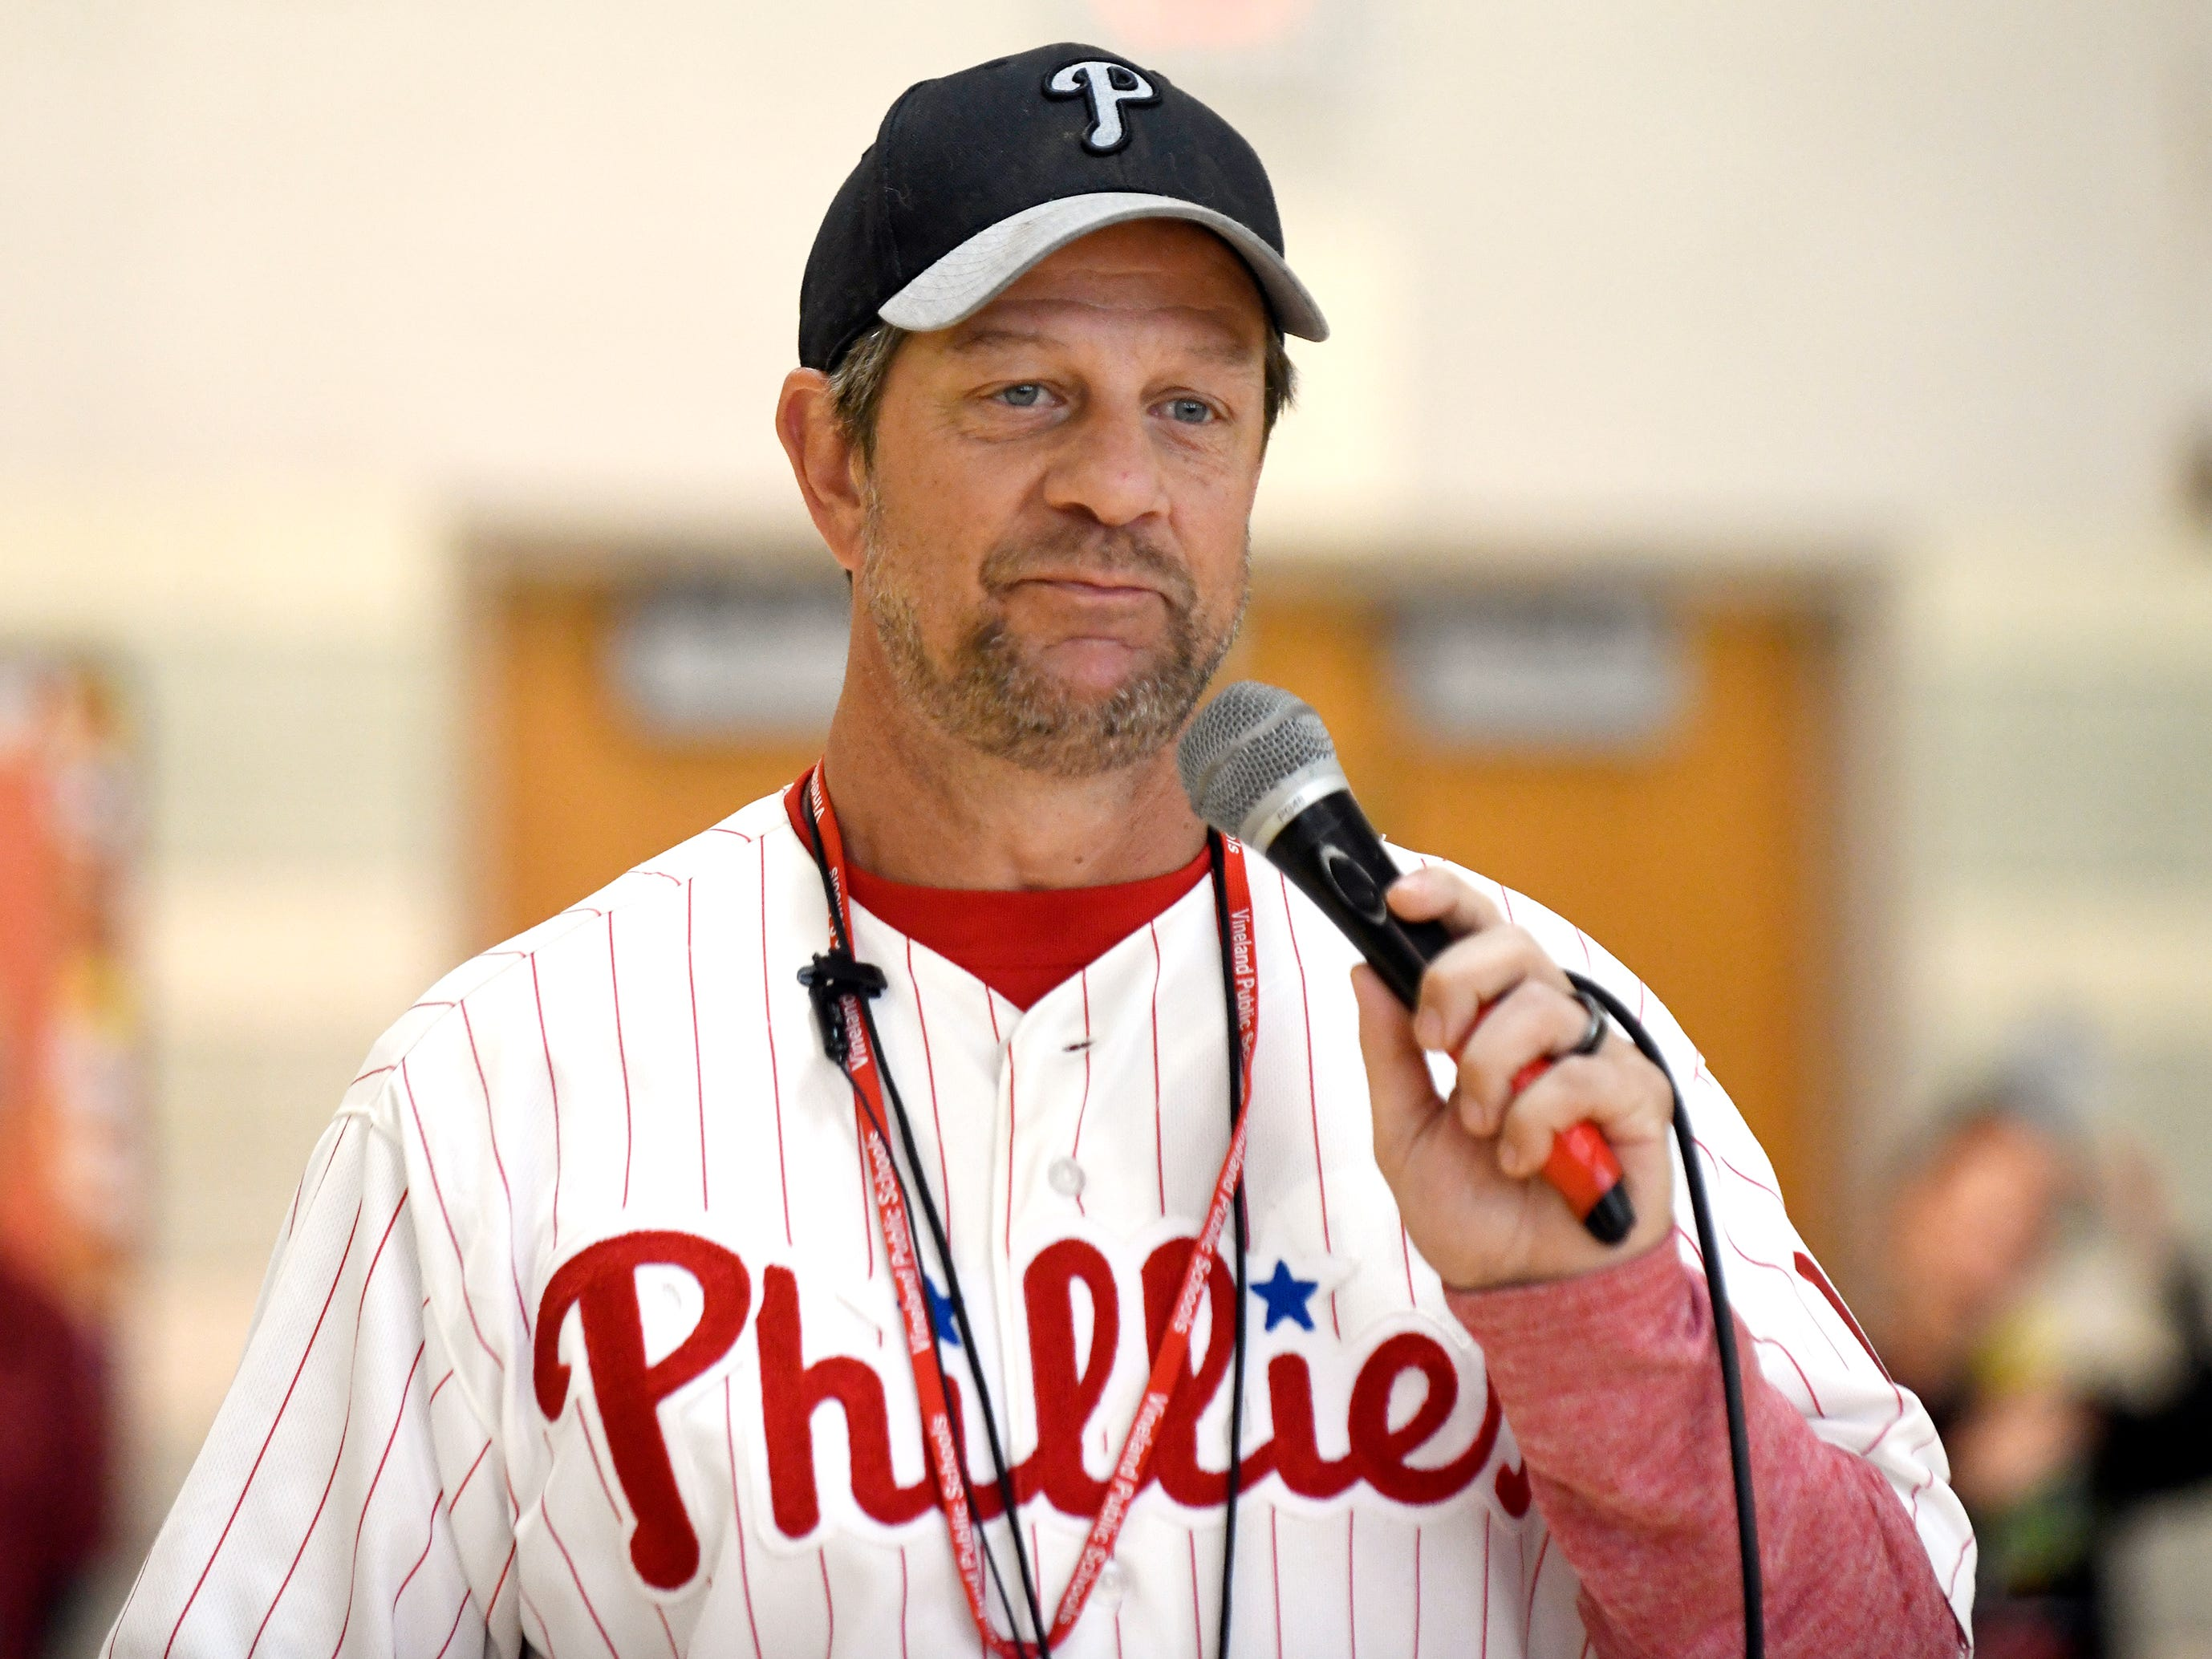 Former Phillies icon Mickey Morandini stopped by Veterans Memorial School in Vineland on Friday and spoke to a packed gymnasium about the importance of youth sports and his career in the major leagues. Morandini signed autographs and even had a catch with some of the students.